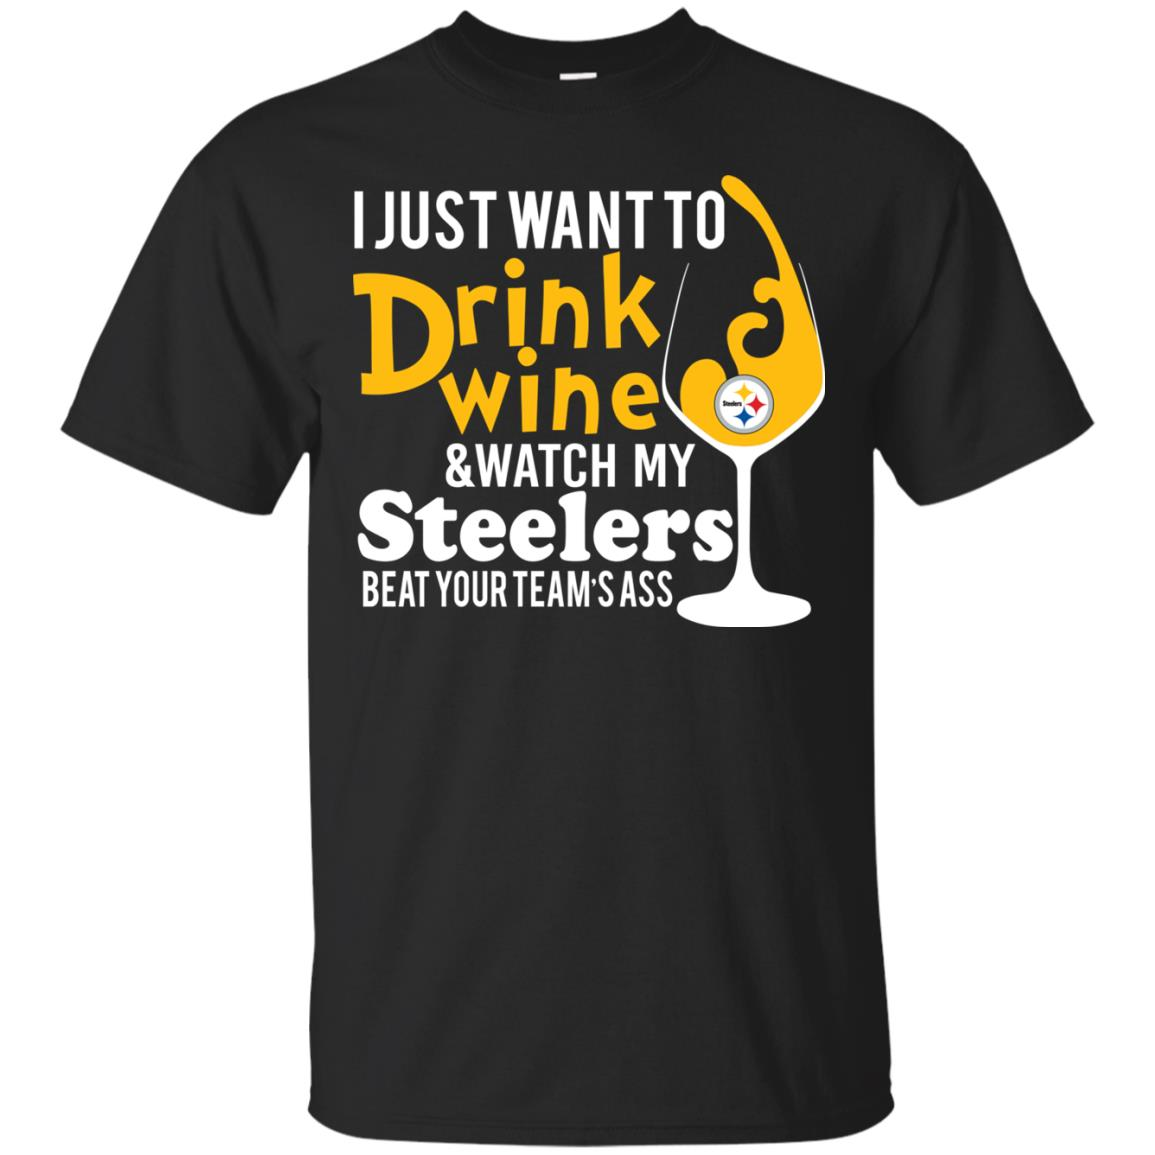 image 535px I just want to drink wine & watch my Steelers beat your team's ass t shirts, hoodies, tank top